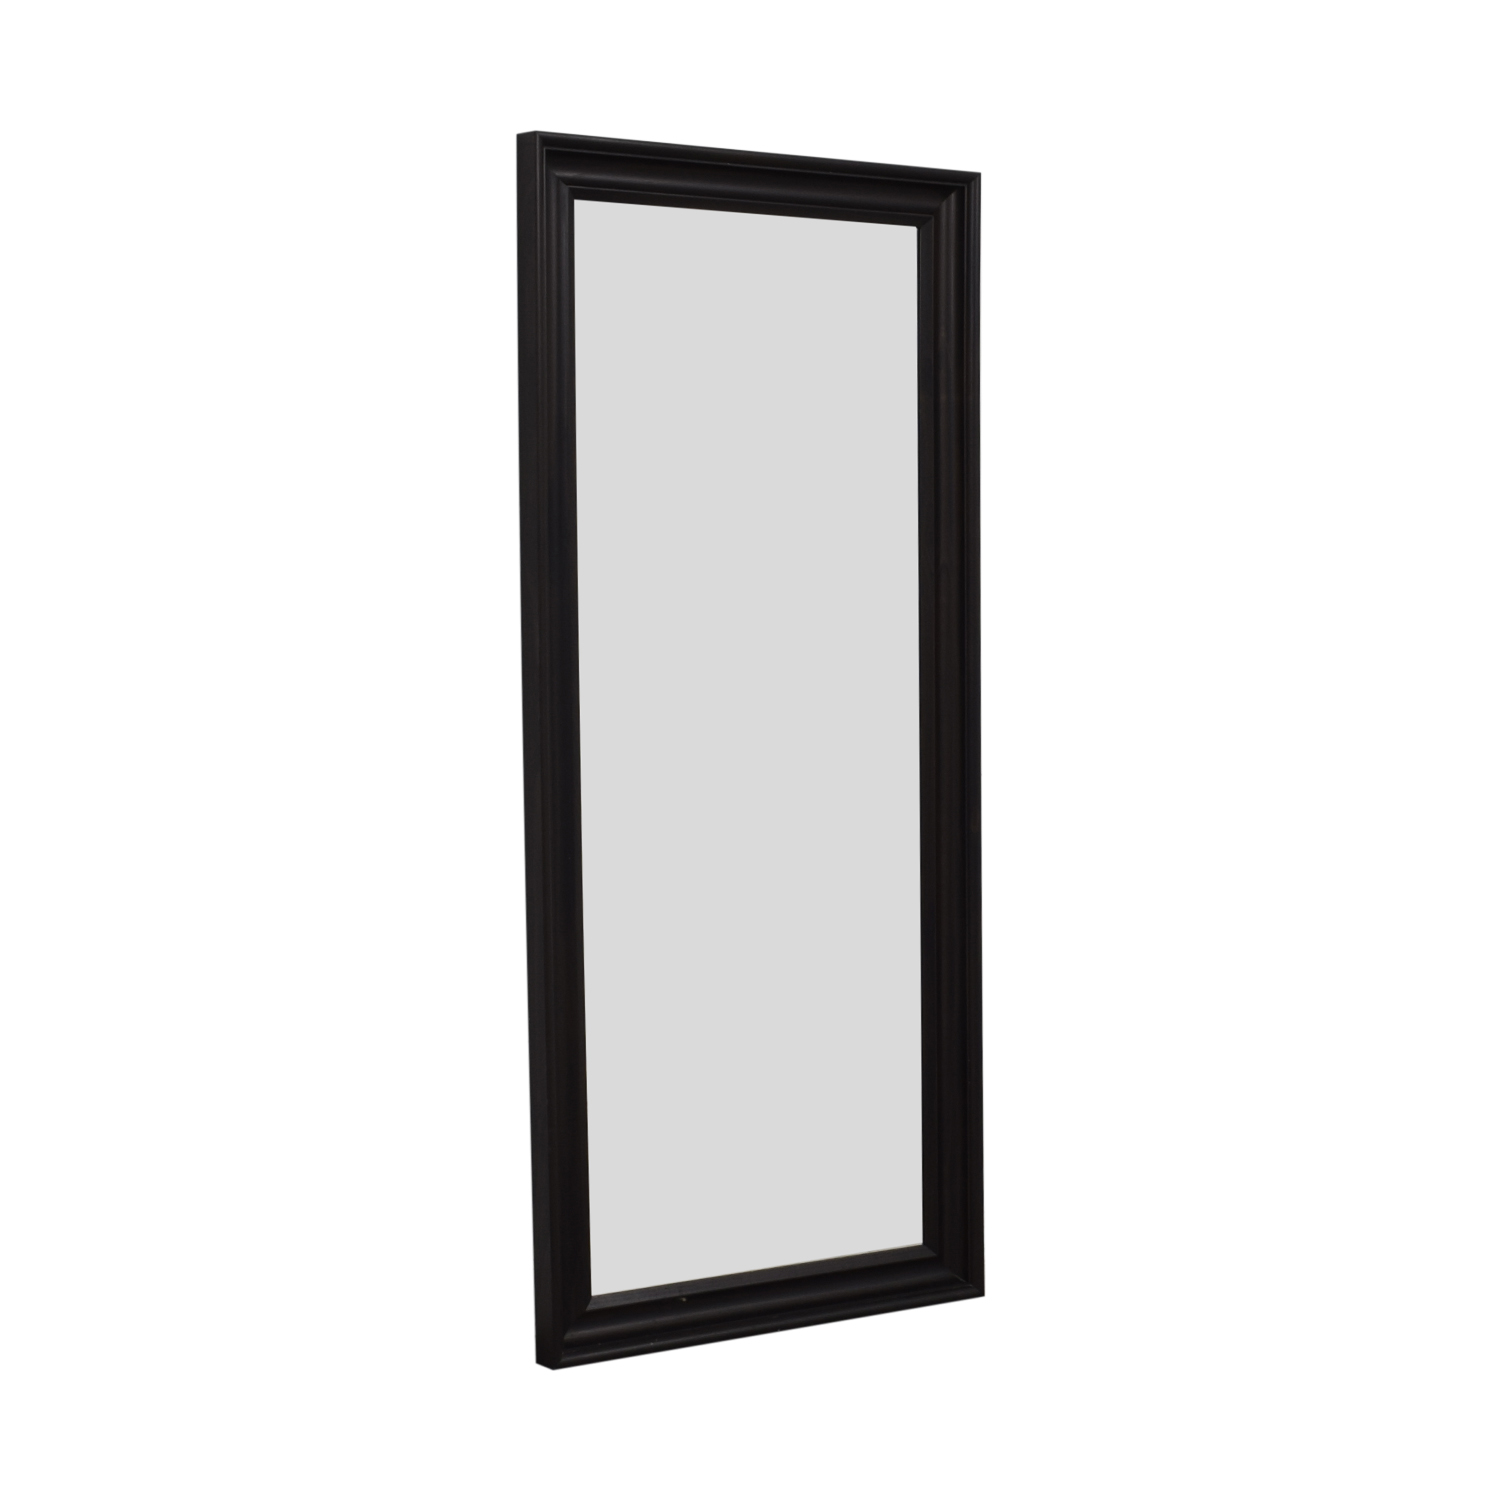 Ikea Ikea Hemnes Brown Framed Floor Mirror second hand